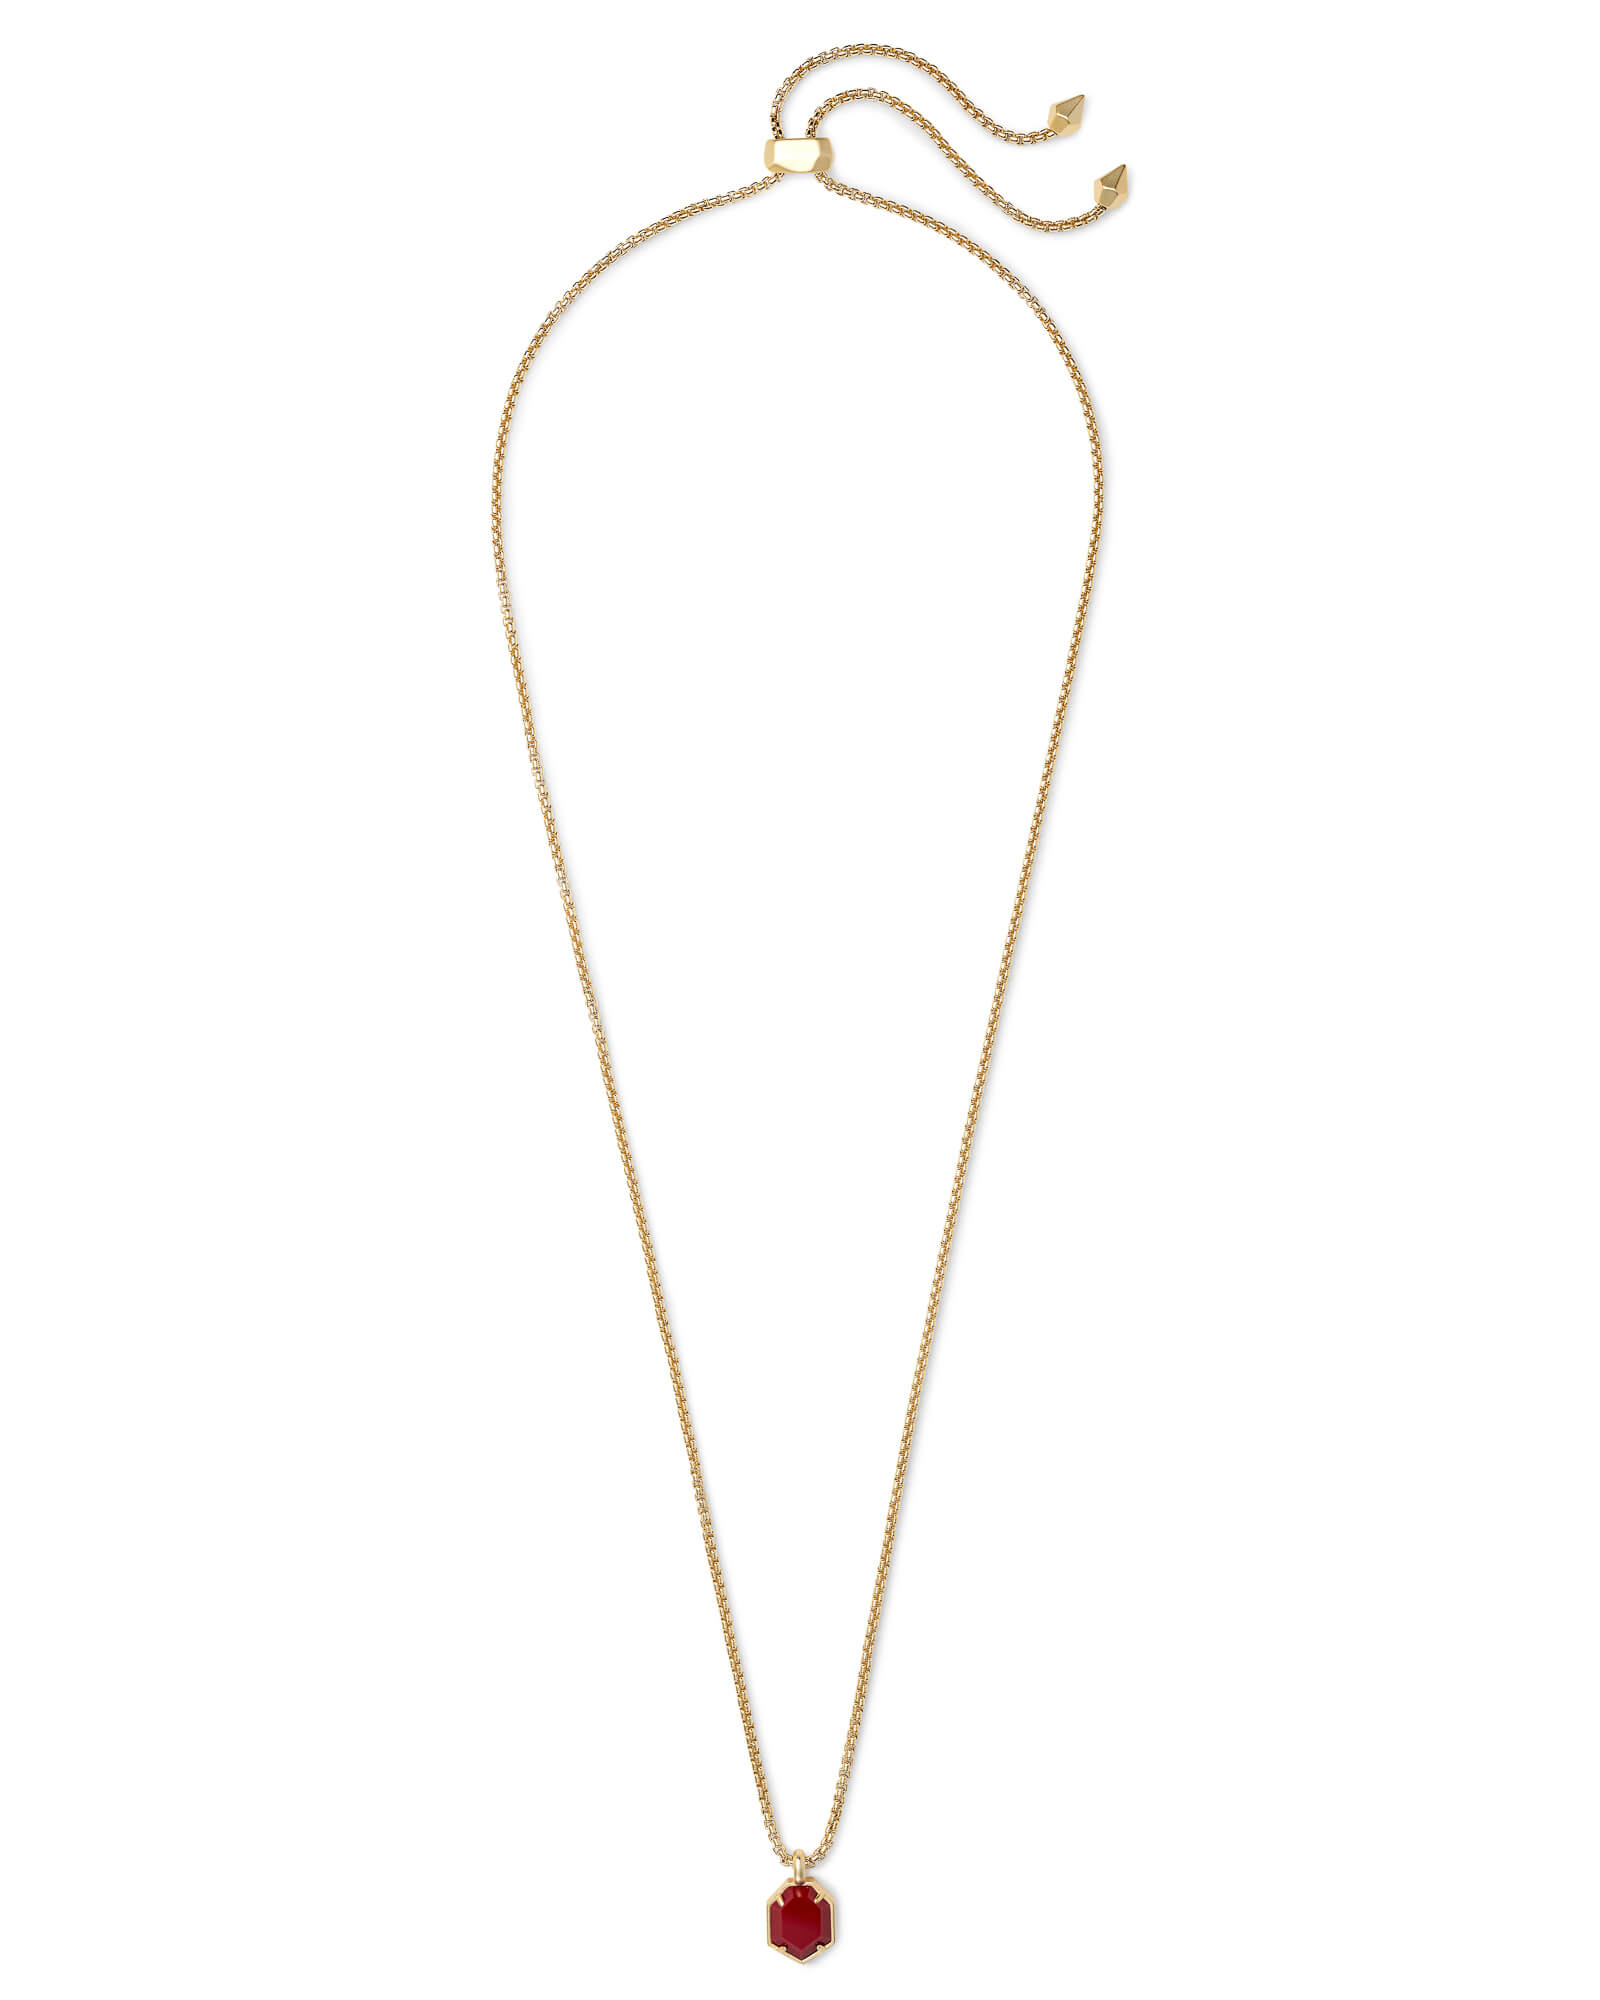 Teo Gold Pendant Necklace